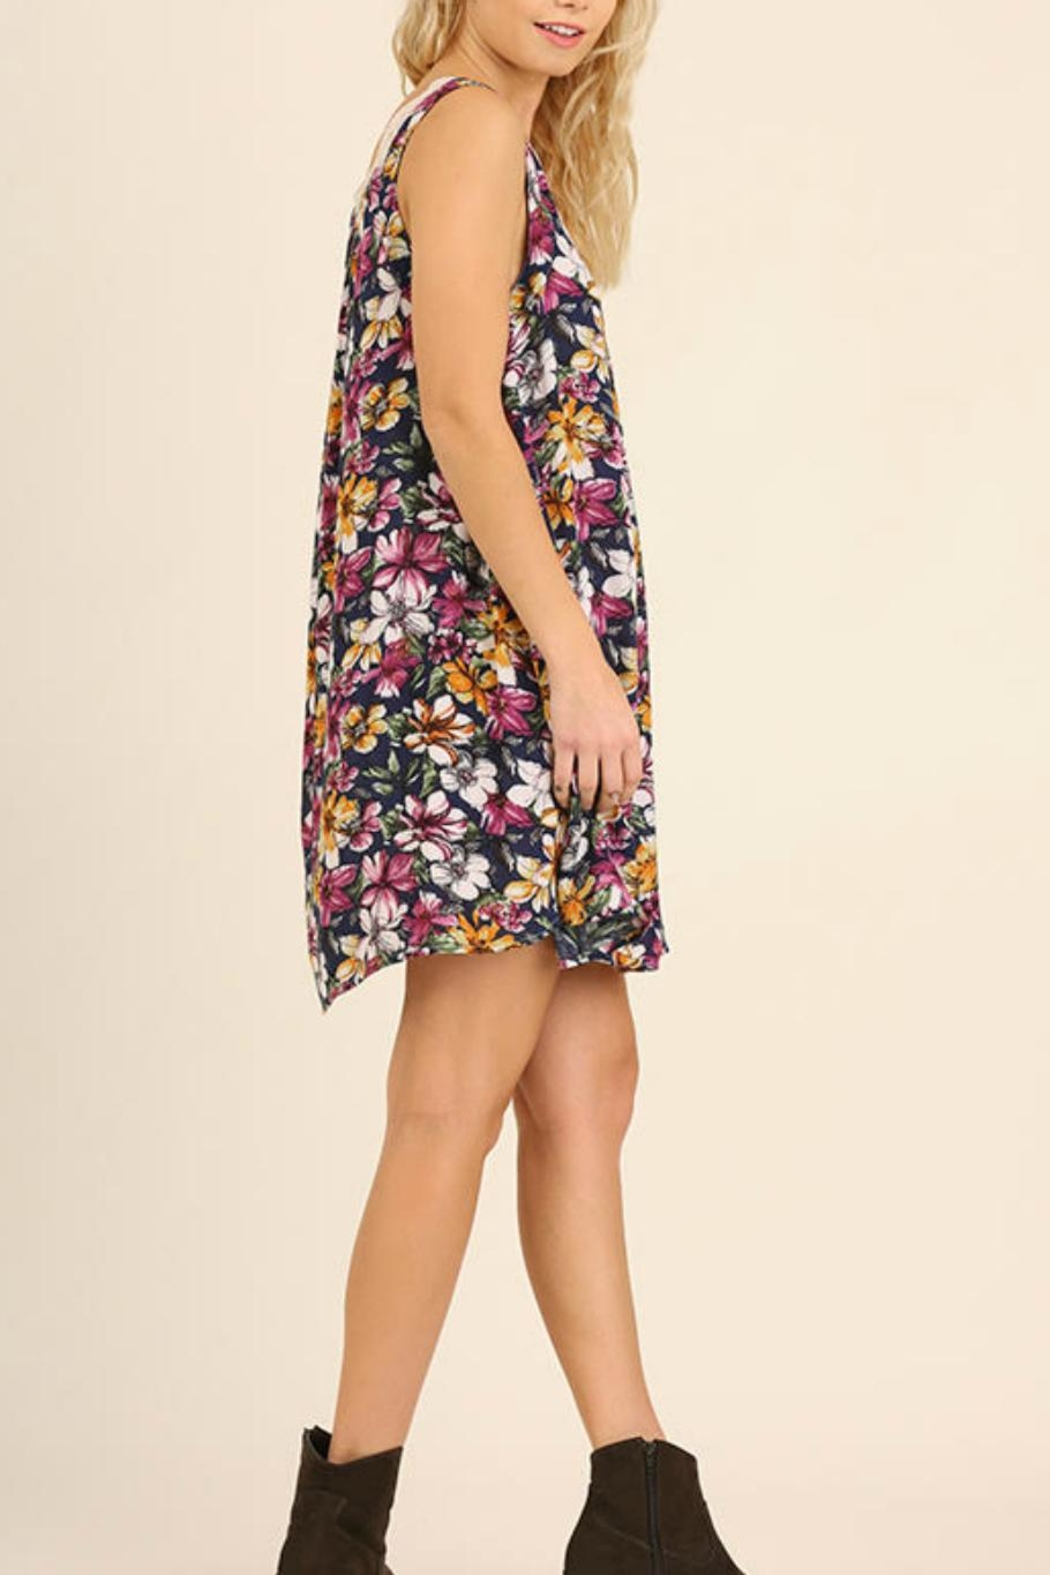 Umgee USA Sleeveless Floral Dress - Side Cropped Image